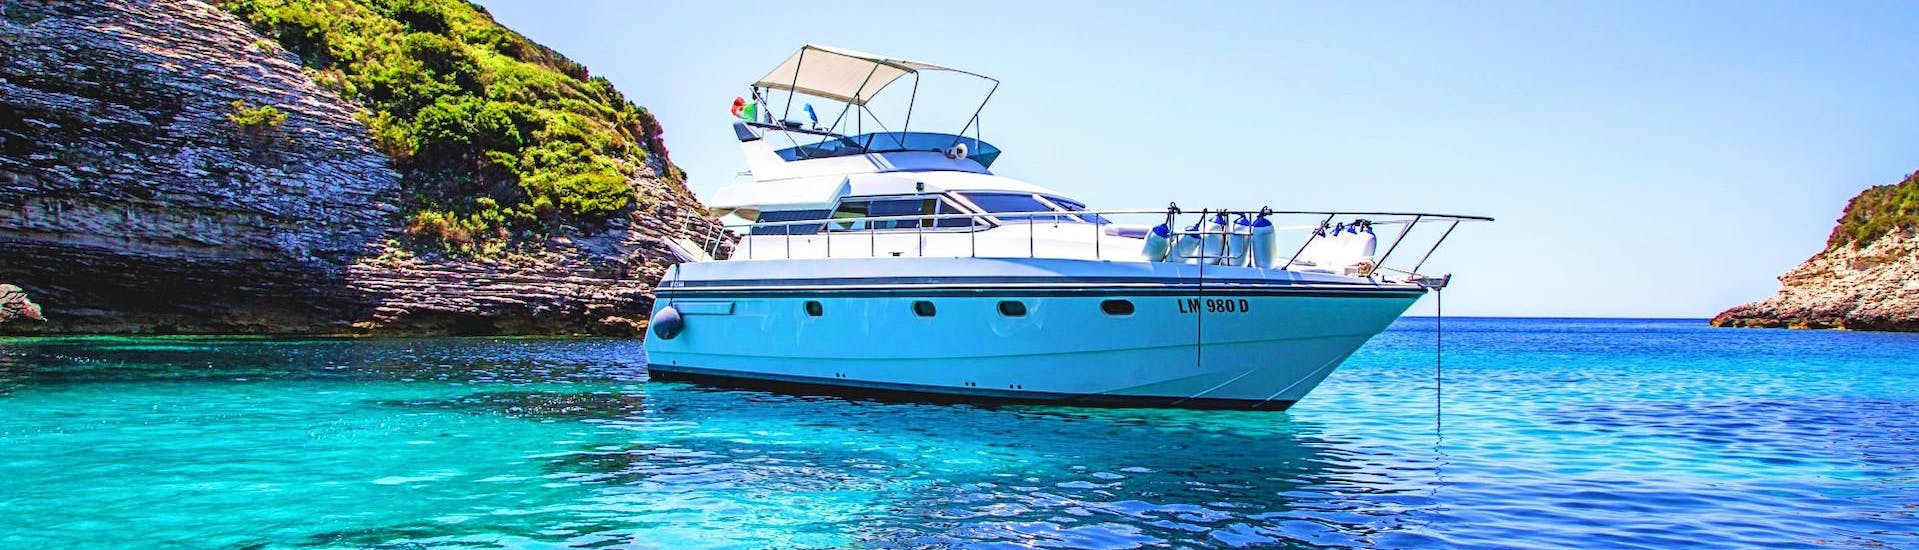 Our exclusive boat on the crystal clear water of Sardinia during the private boat trip around Sardinia and Corsica with Maggior Leggero Tour.